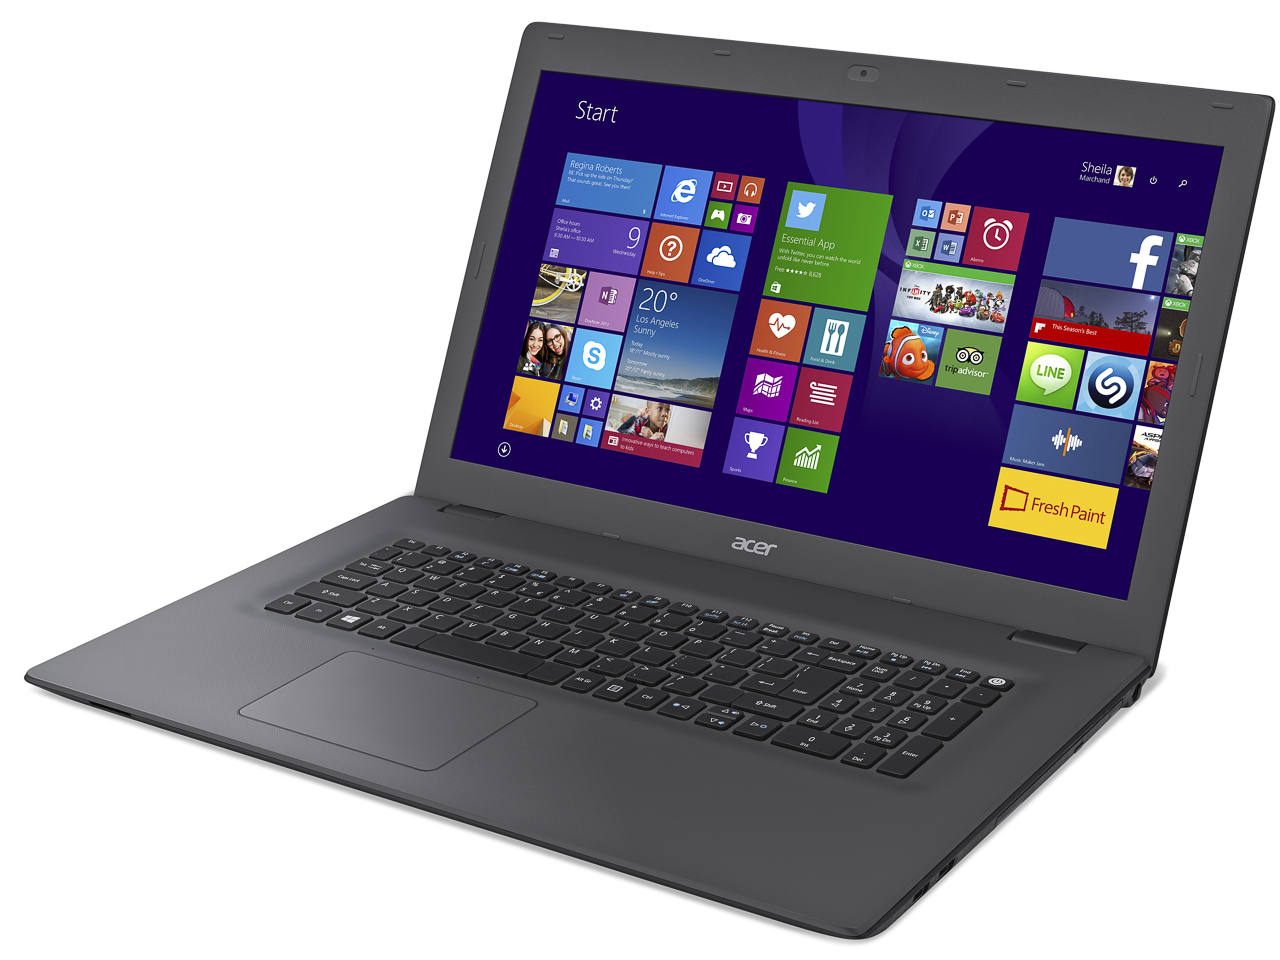 ACER ASPIRE E5-772 NVIDIA GRAPHICS WINDOWS 8 DRIVERS DOWNLOAD